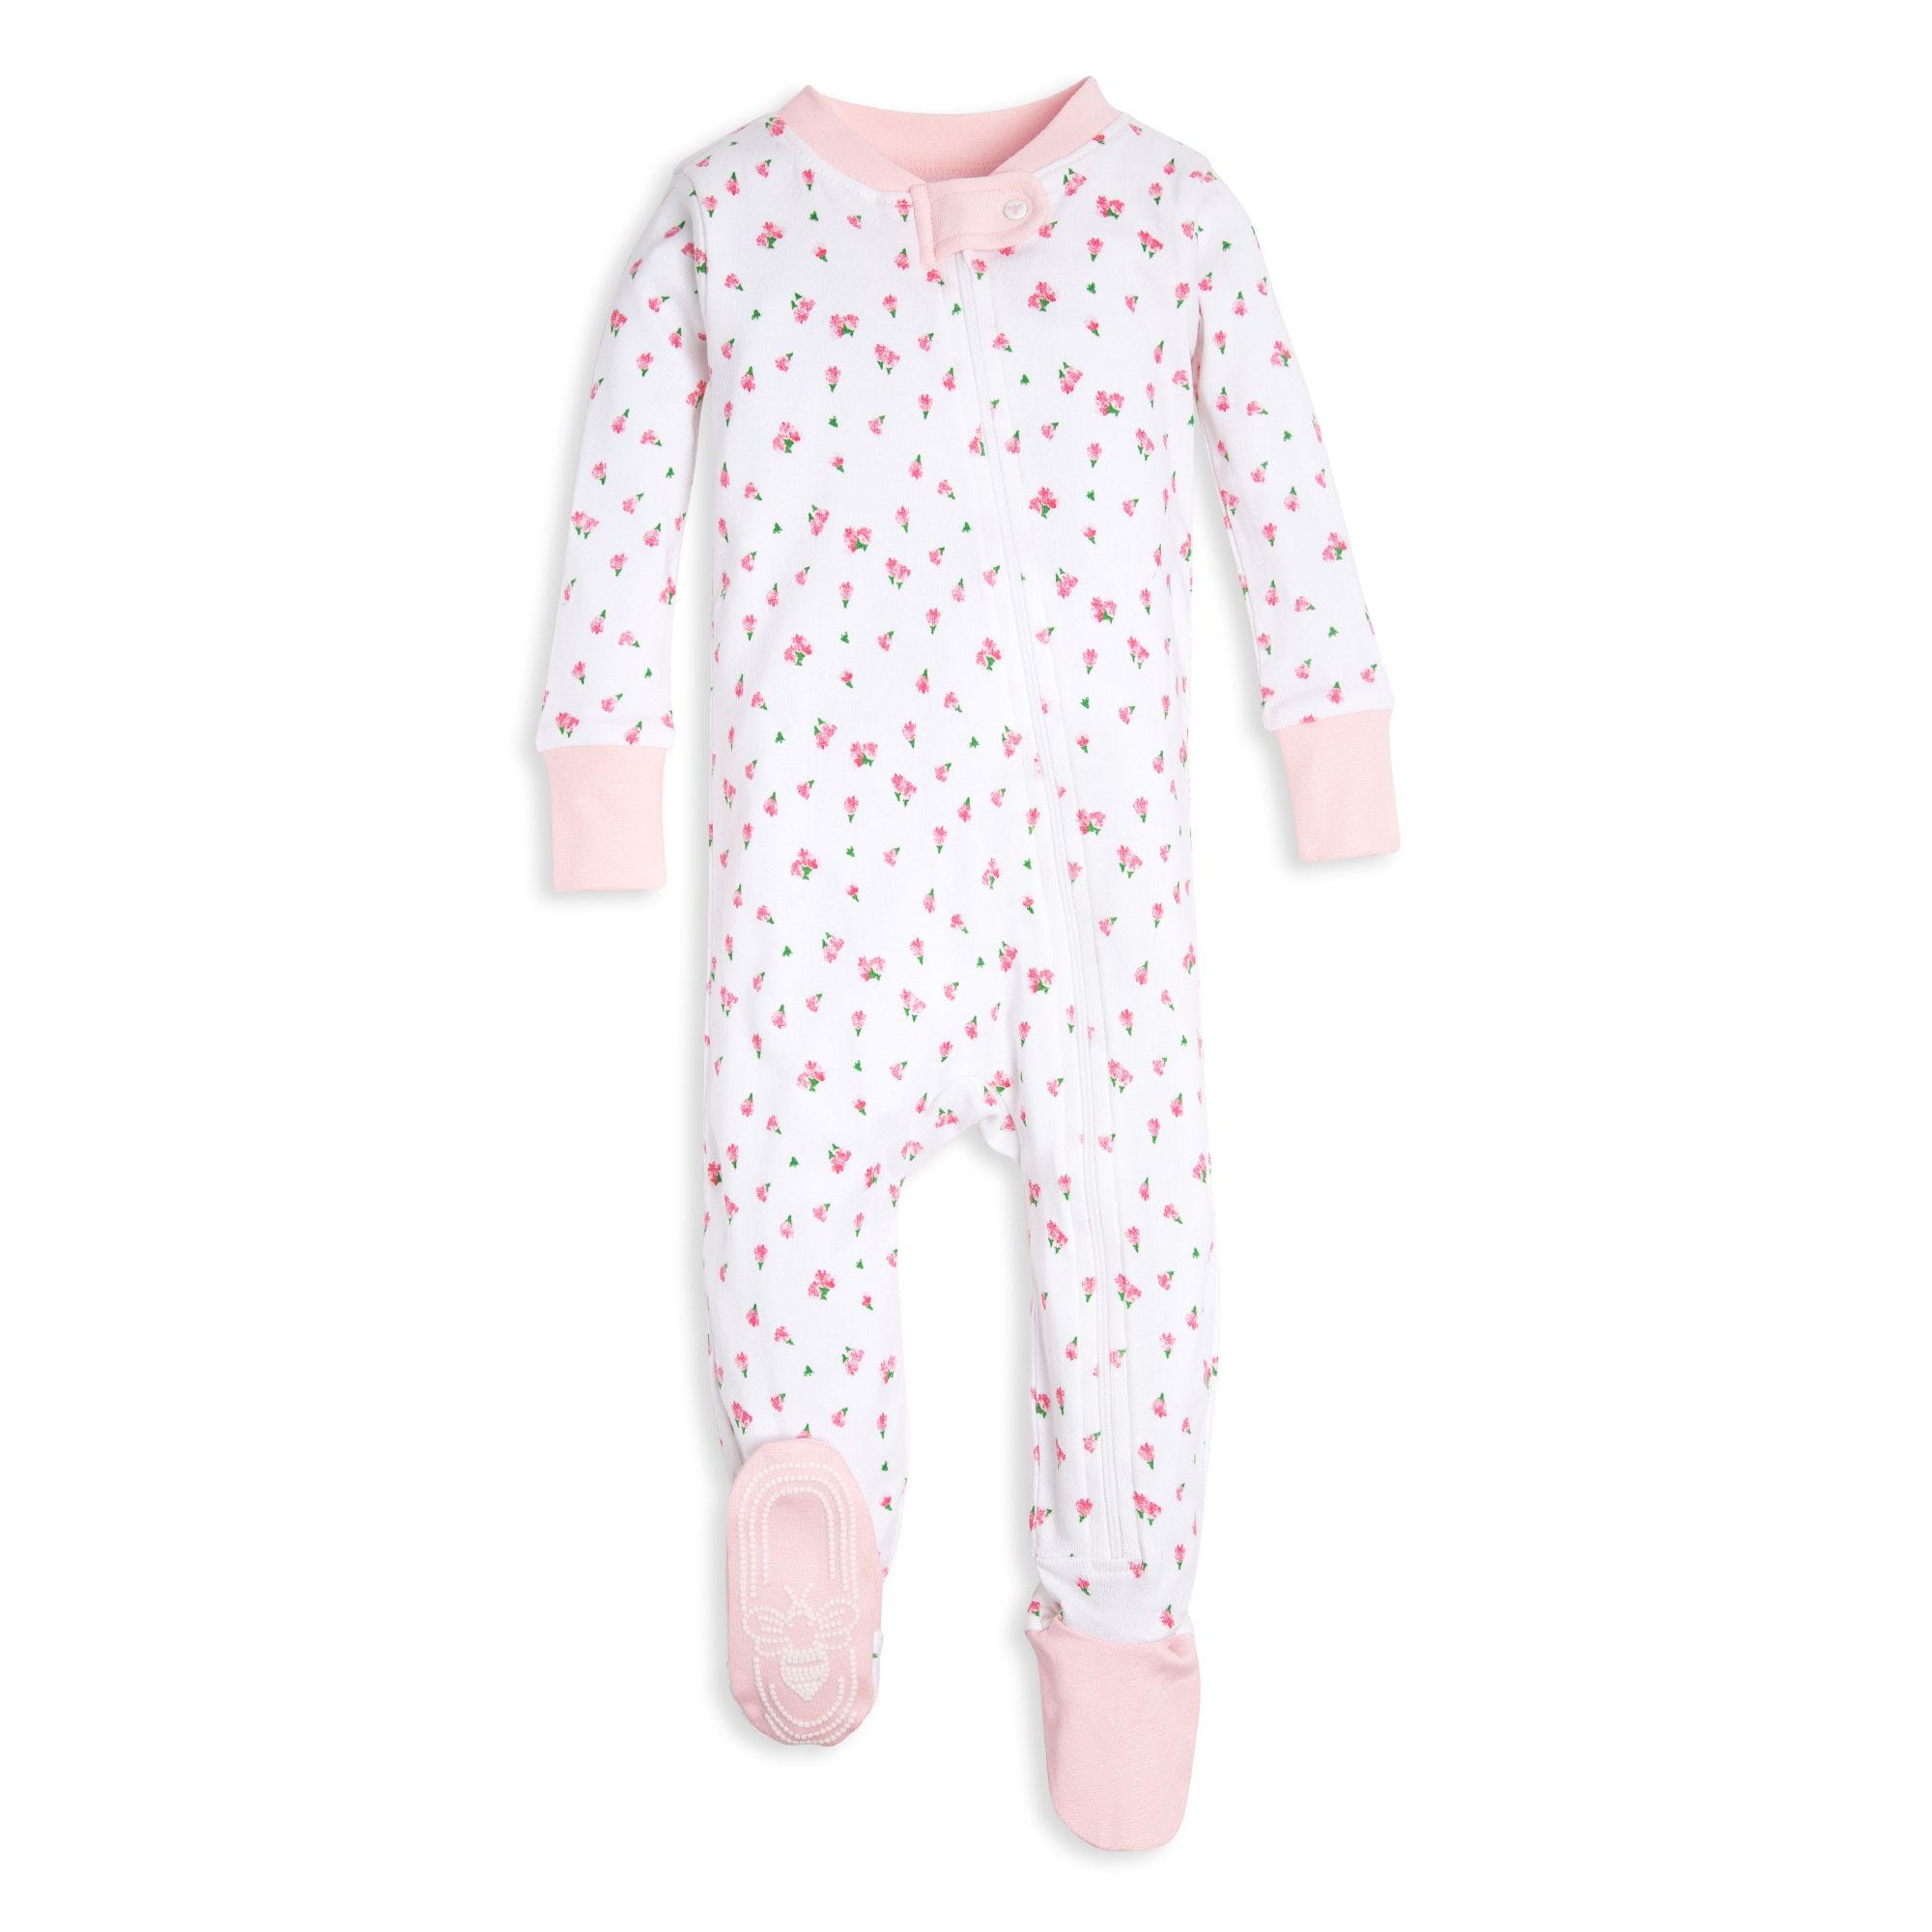 6d07db41e66e Tossed Tulip Organic Baby Zip Up Footed Pajamas